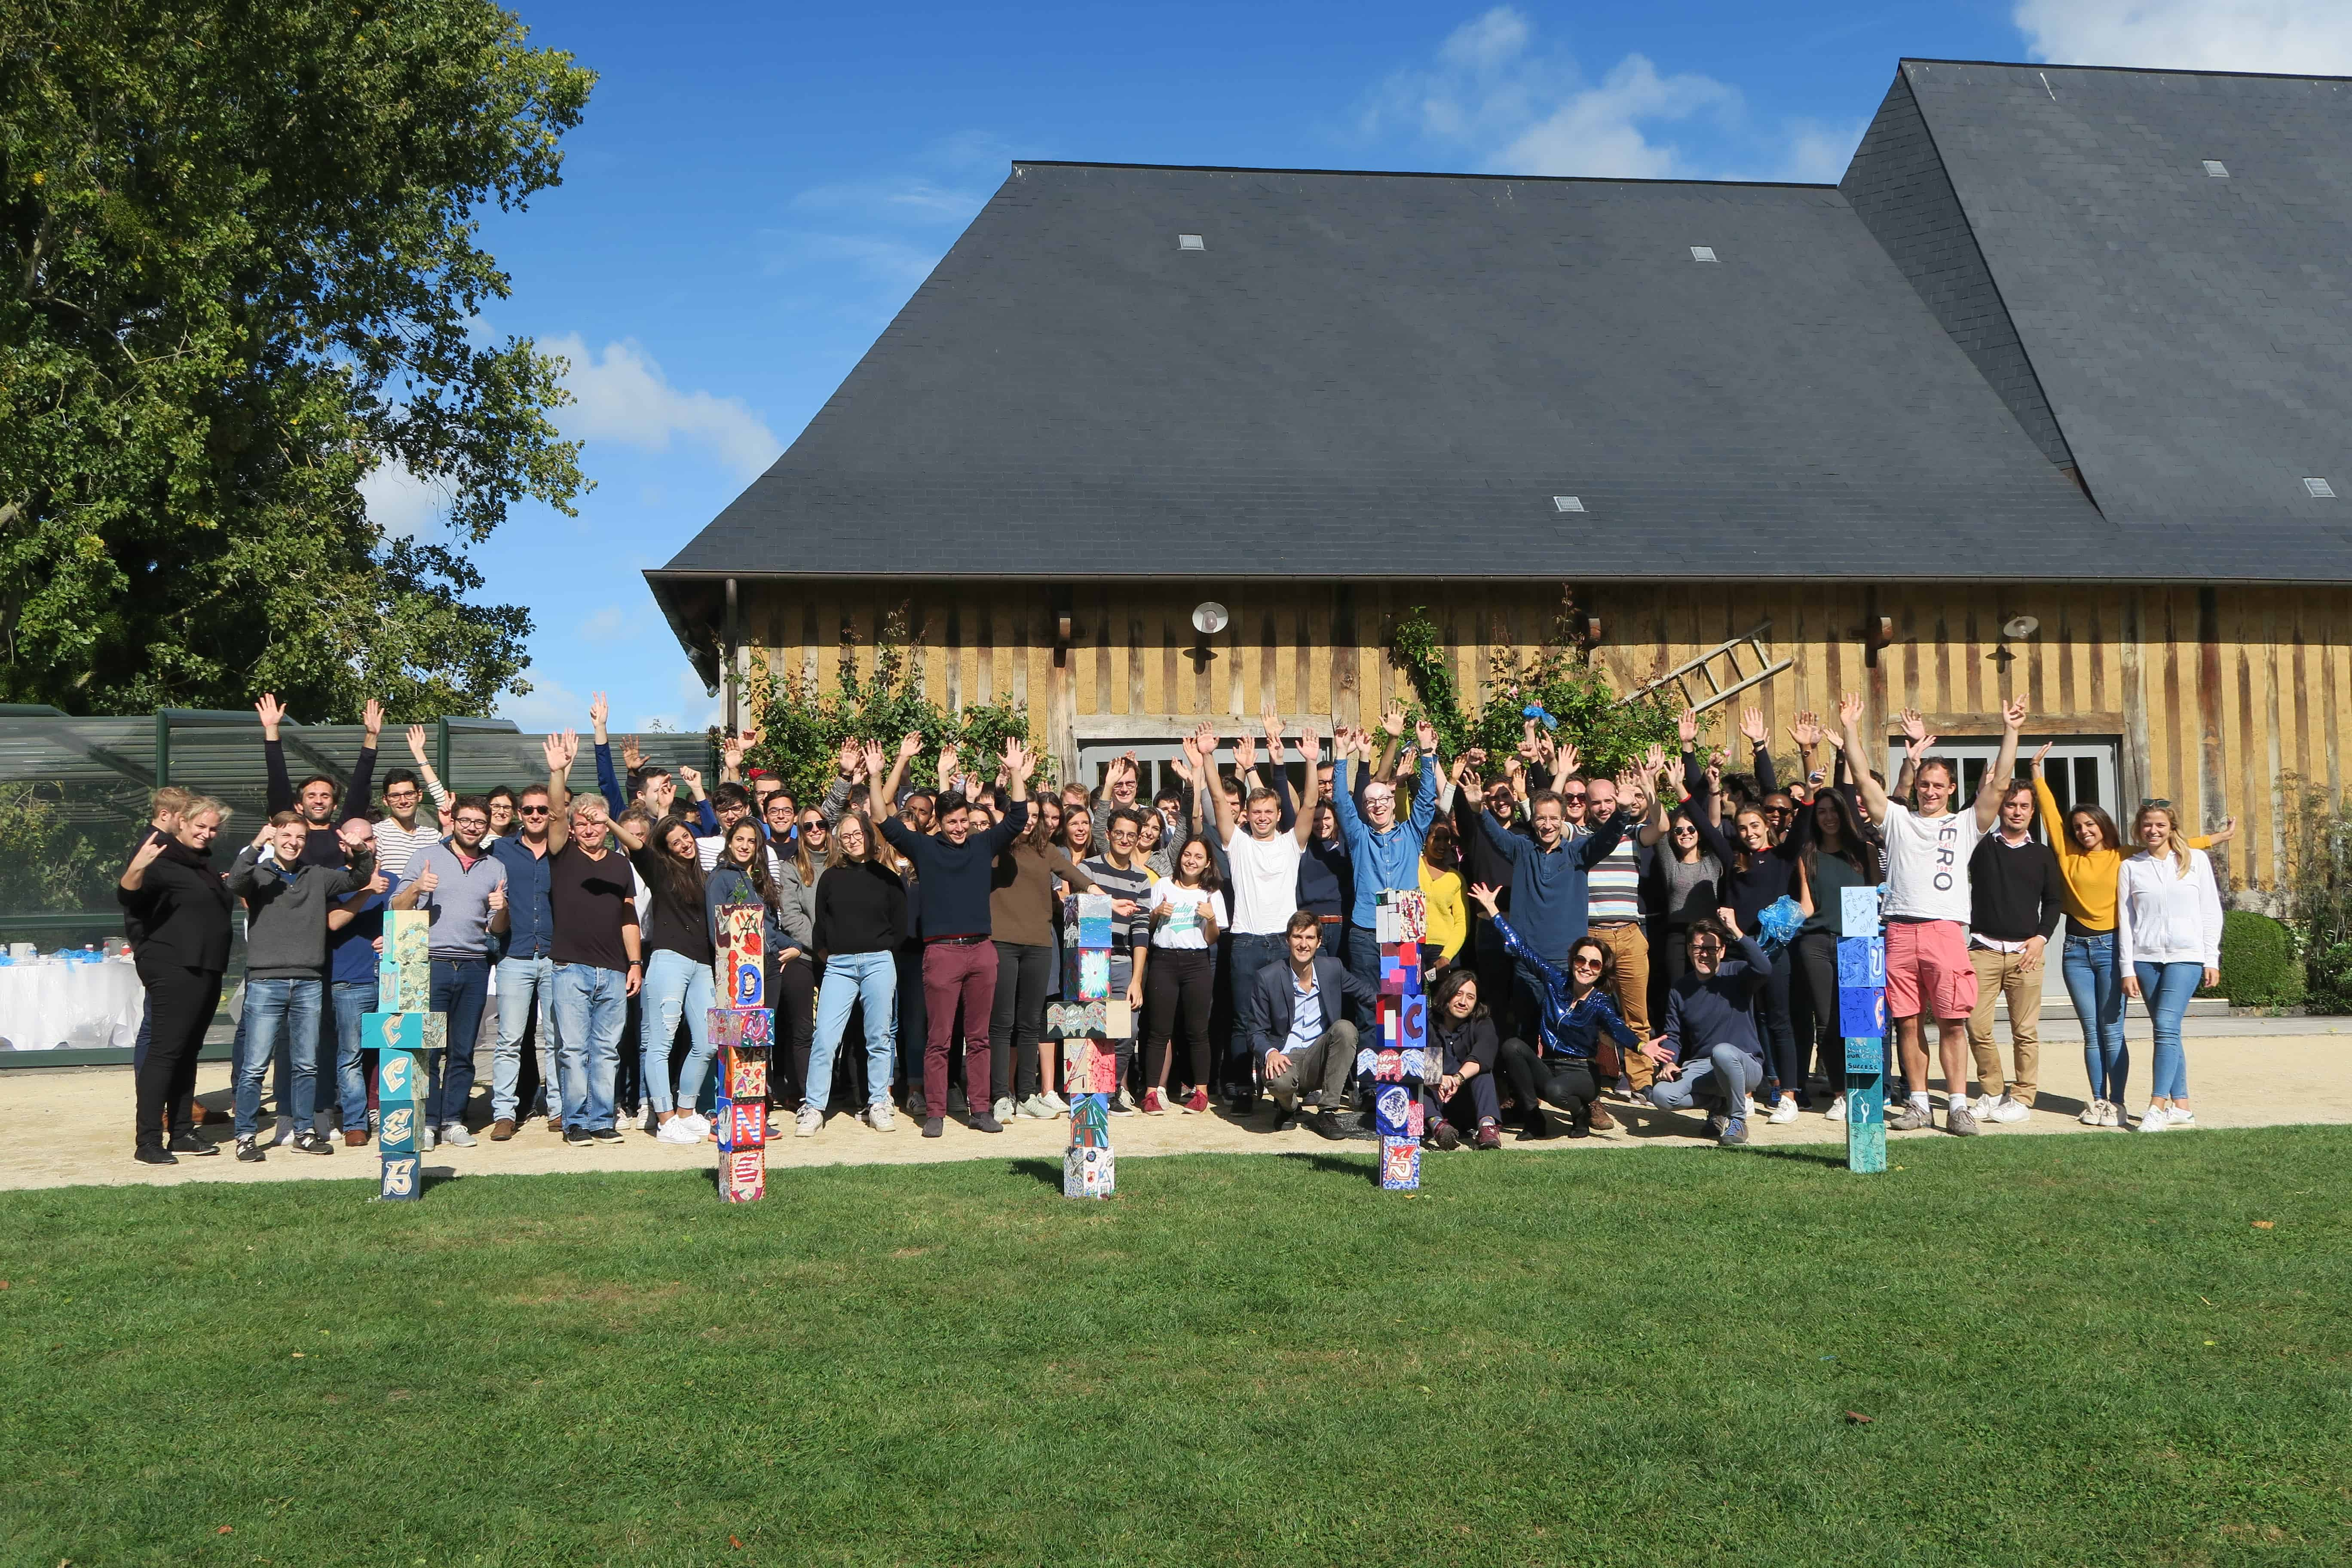 UN SEMINAIRE NORMAND POUR ADVANCY